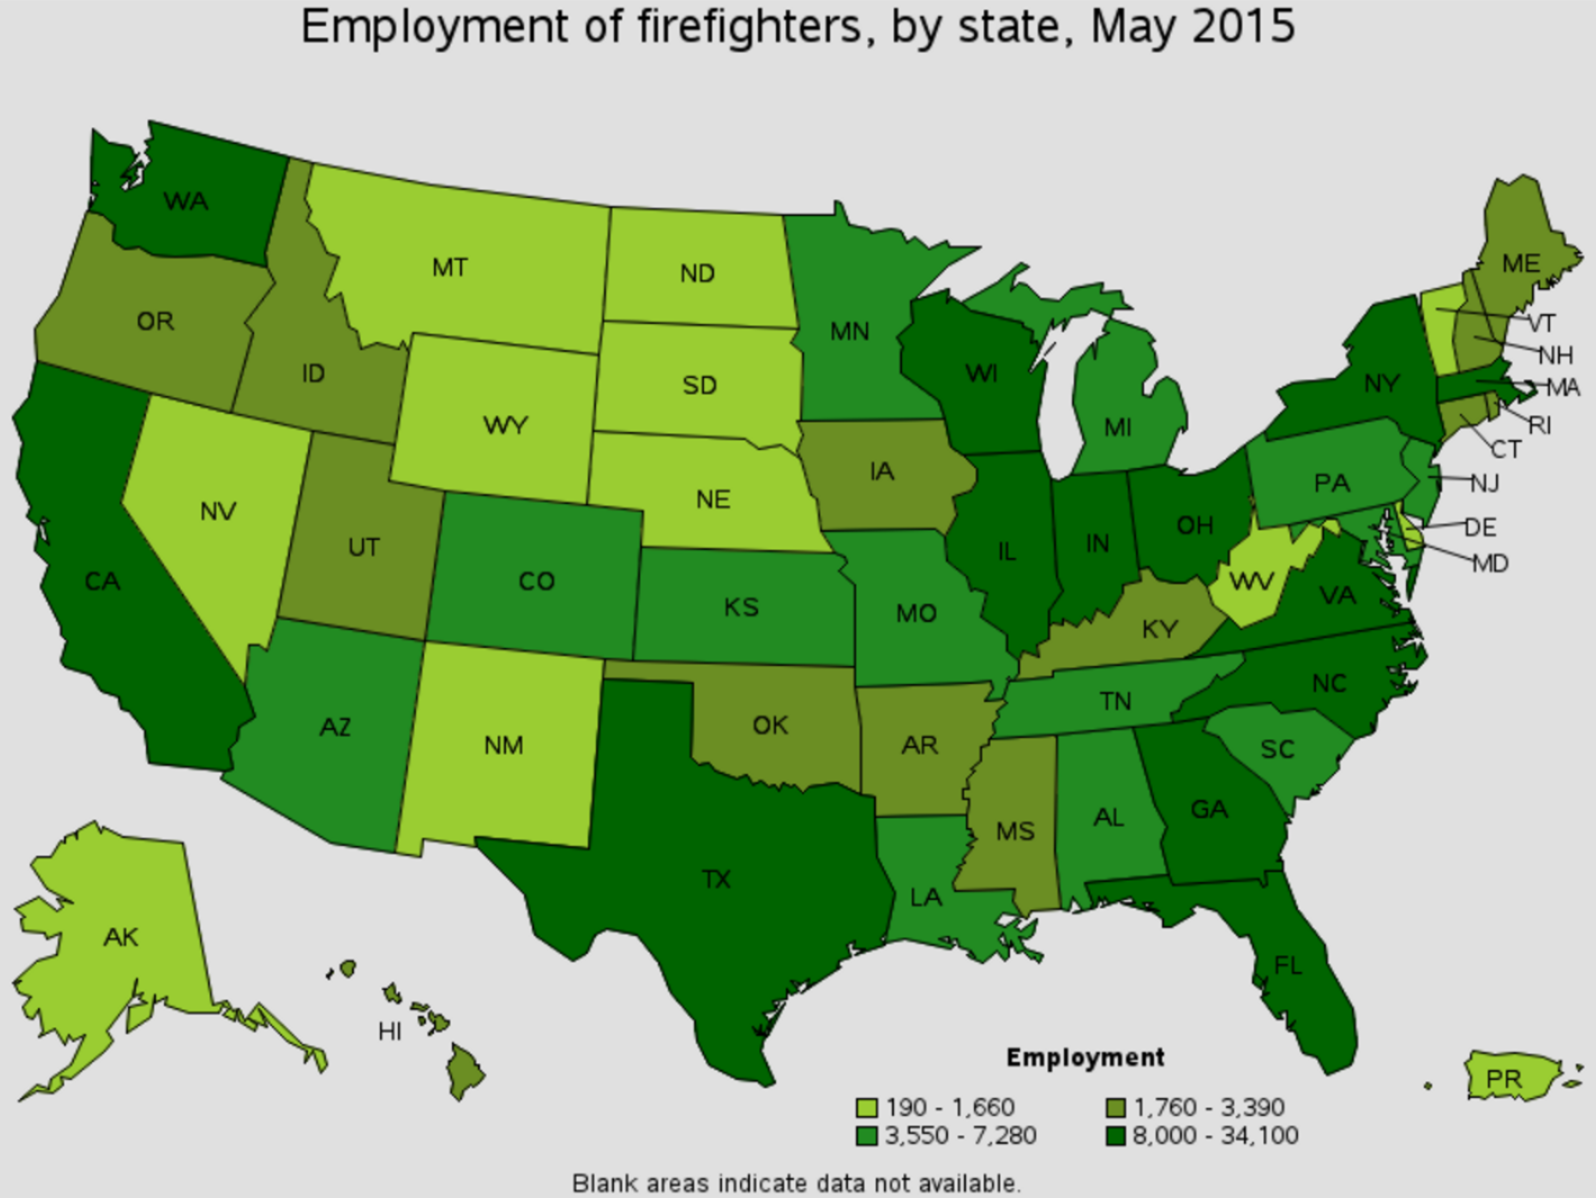 firefighter job outlook by state Wellsburg West Virginia